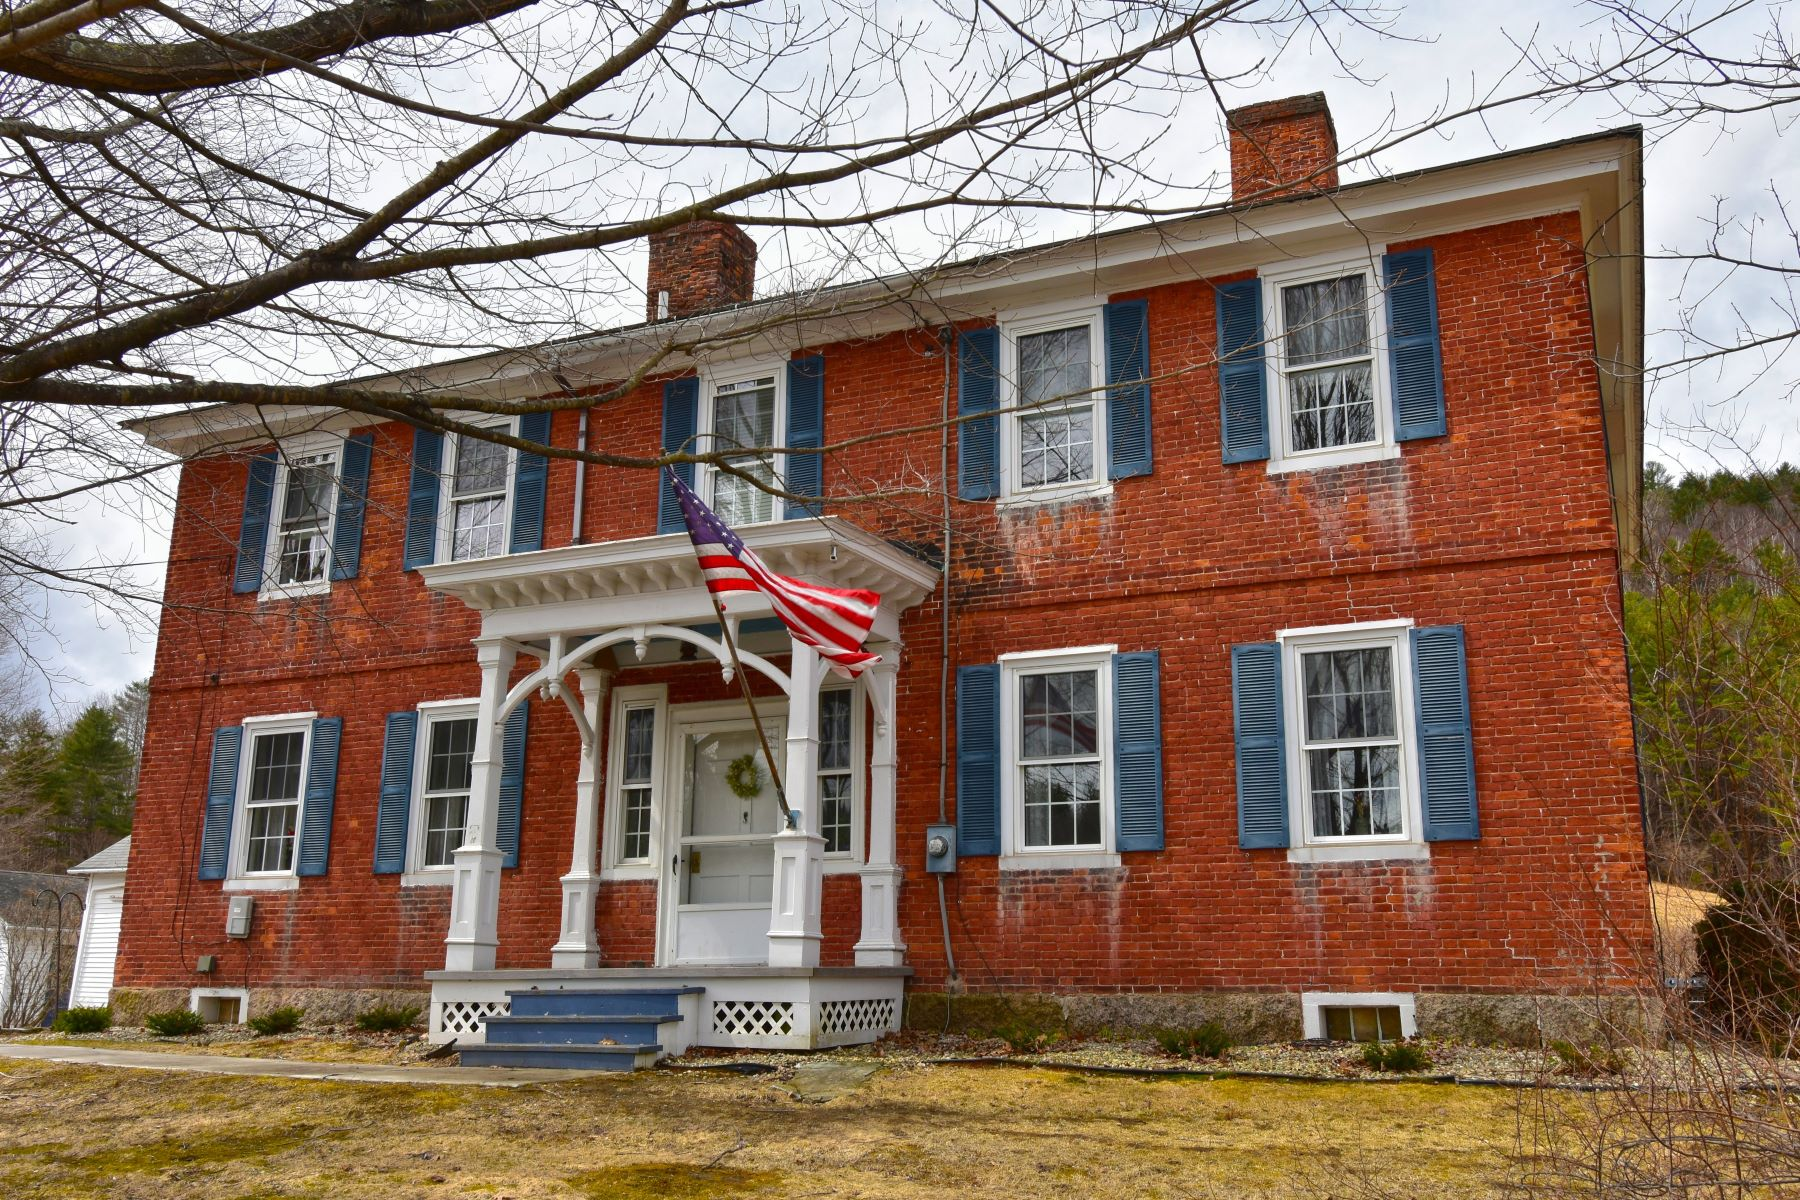 Single Family Home for Sale at 280 Nh Route 120, Cornish 280 Nh Route 120 Cornish, New Hampshire 03745 United States